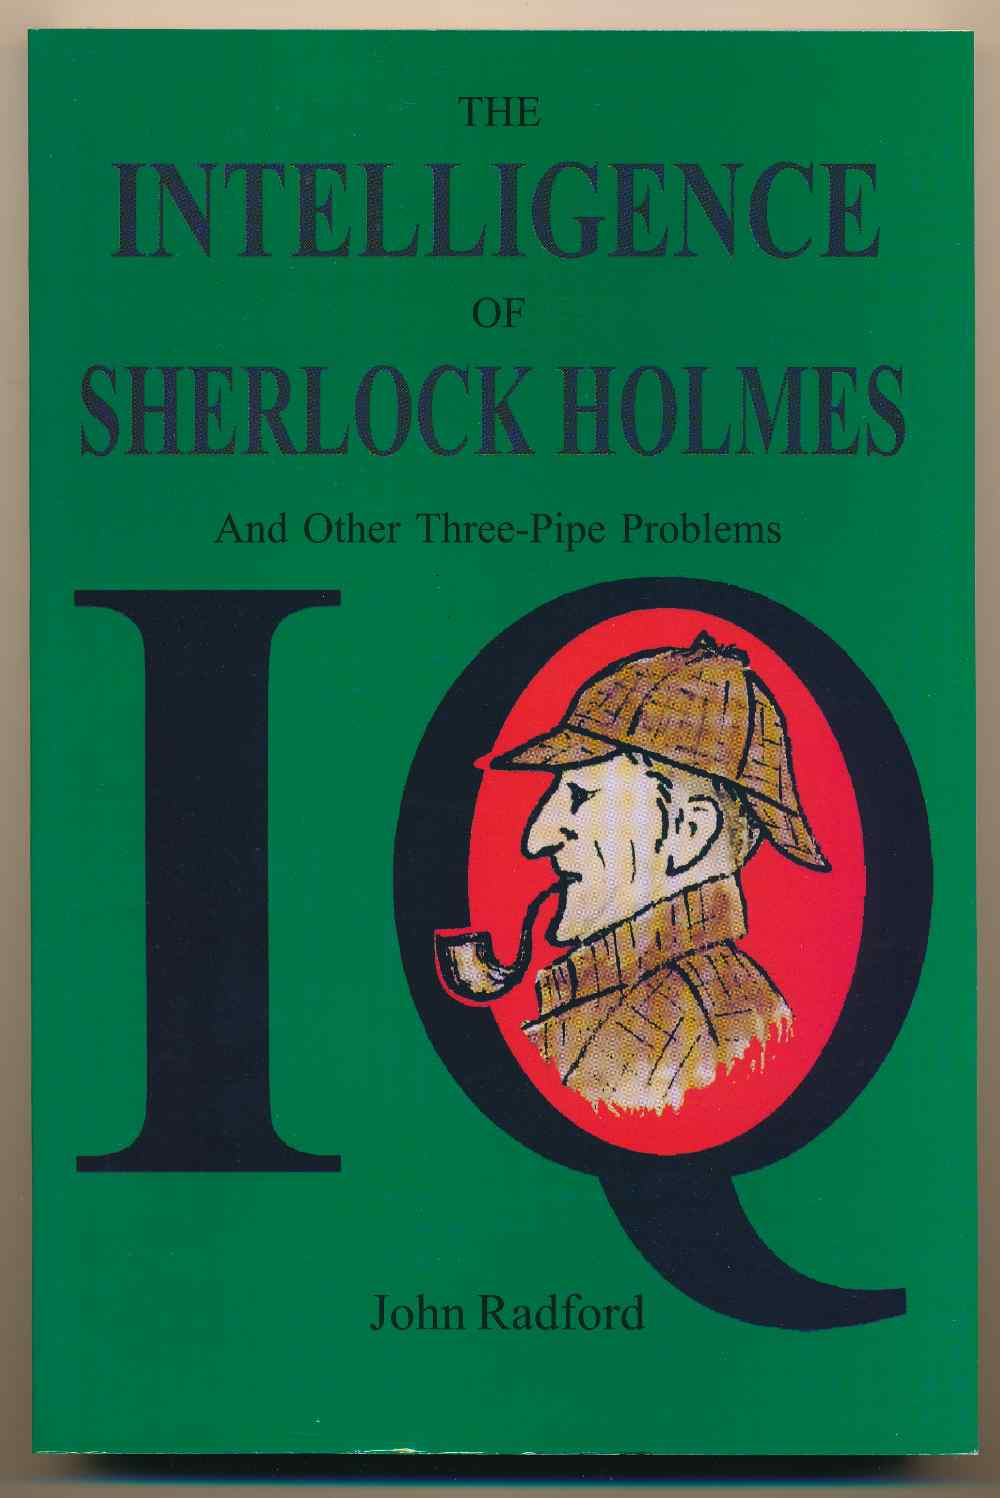 The intelligence of Sherlock Holmes, and other three-pipe problems : psychological studies of the Great Detective and his companion Dr John H Watson